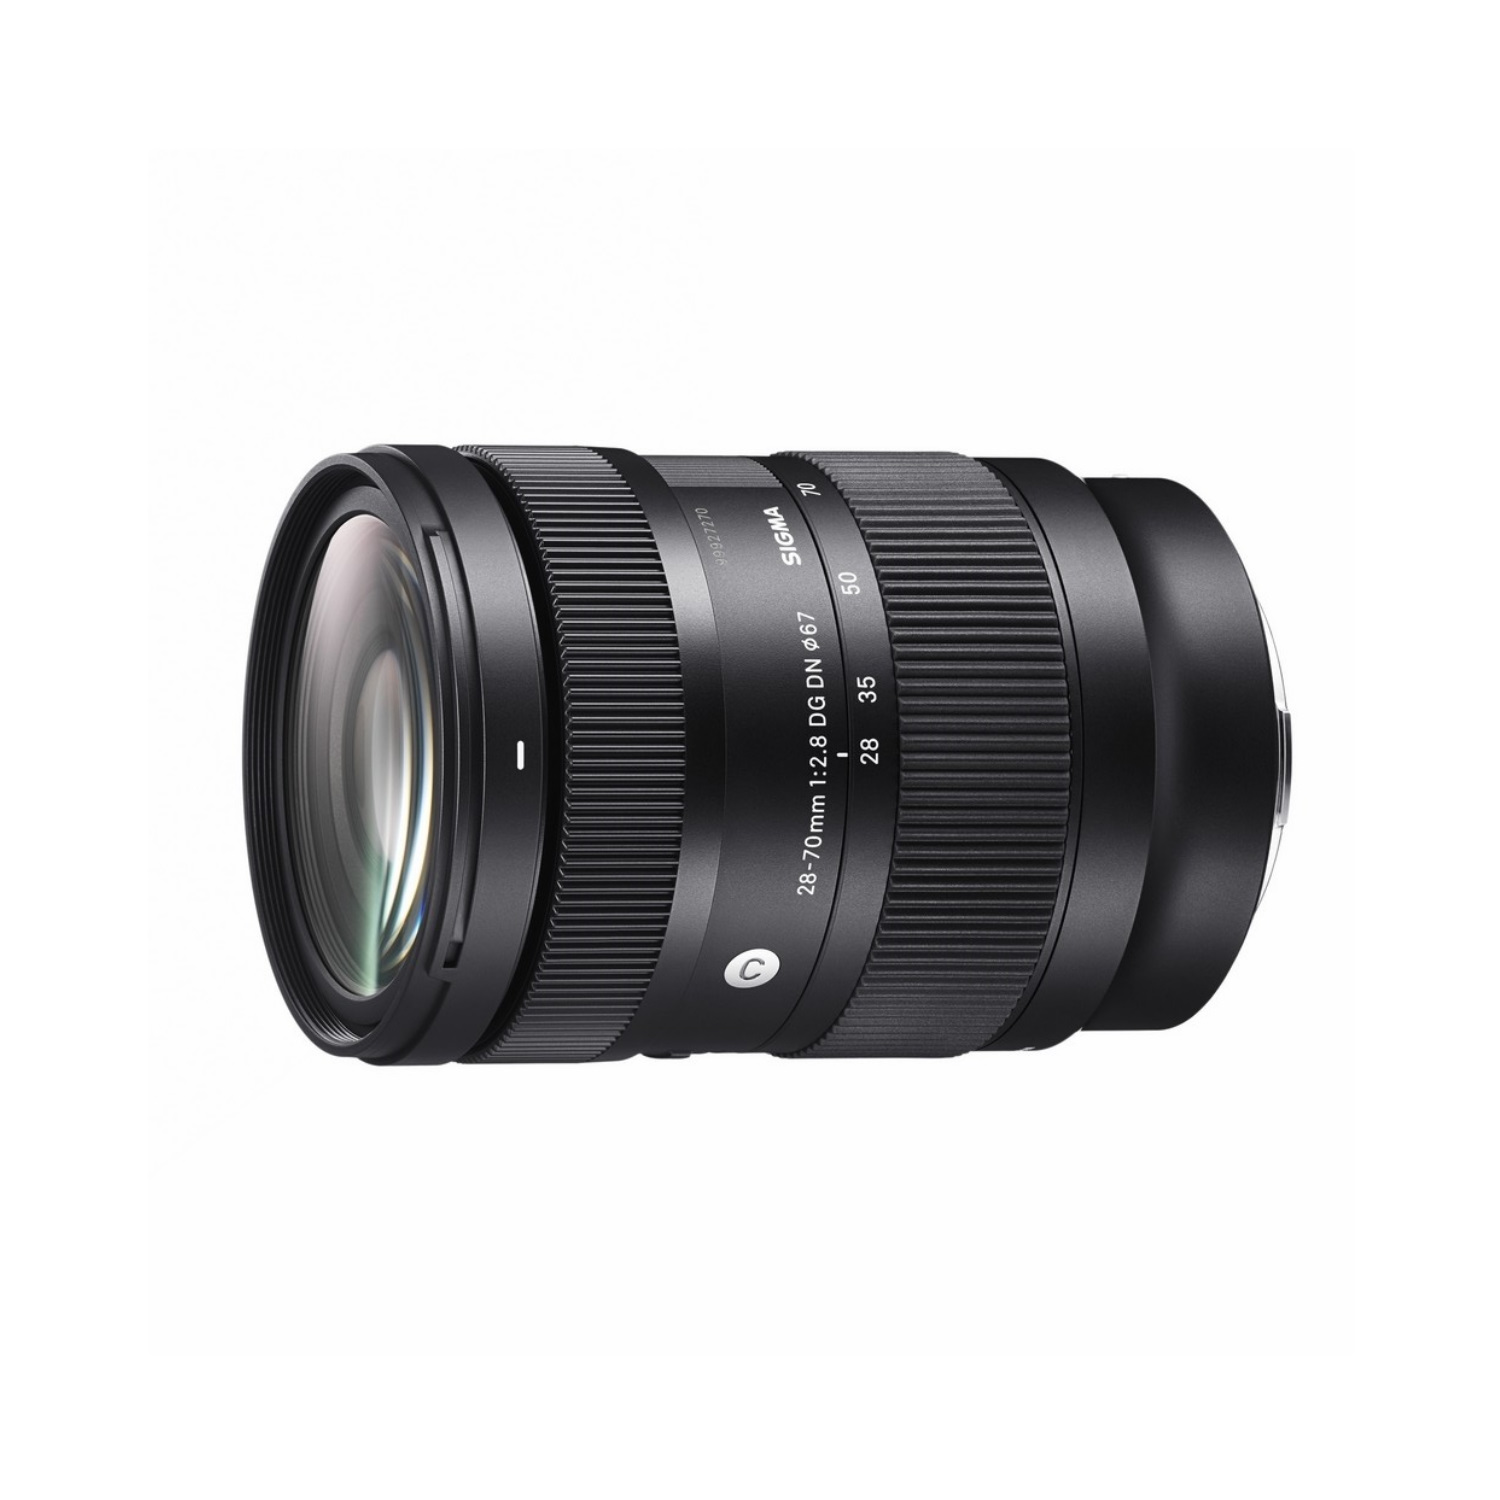 Sigma 28-70mm f/2.8 DG DN Contemporary Lens for Sony E-Mount